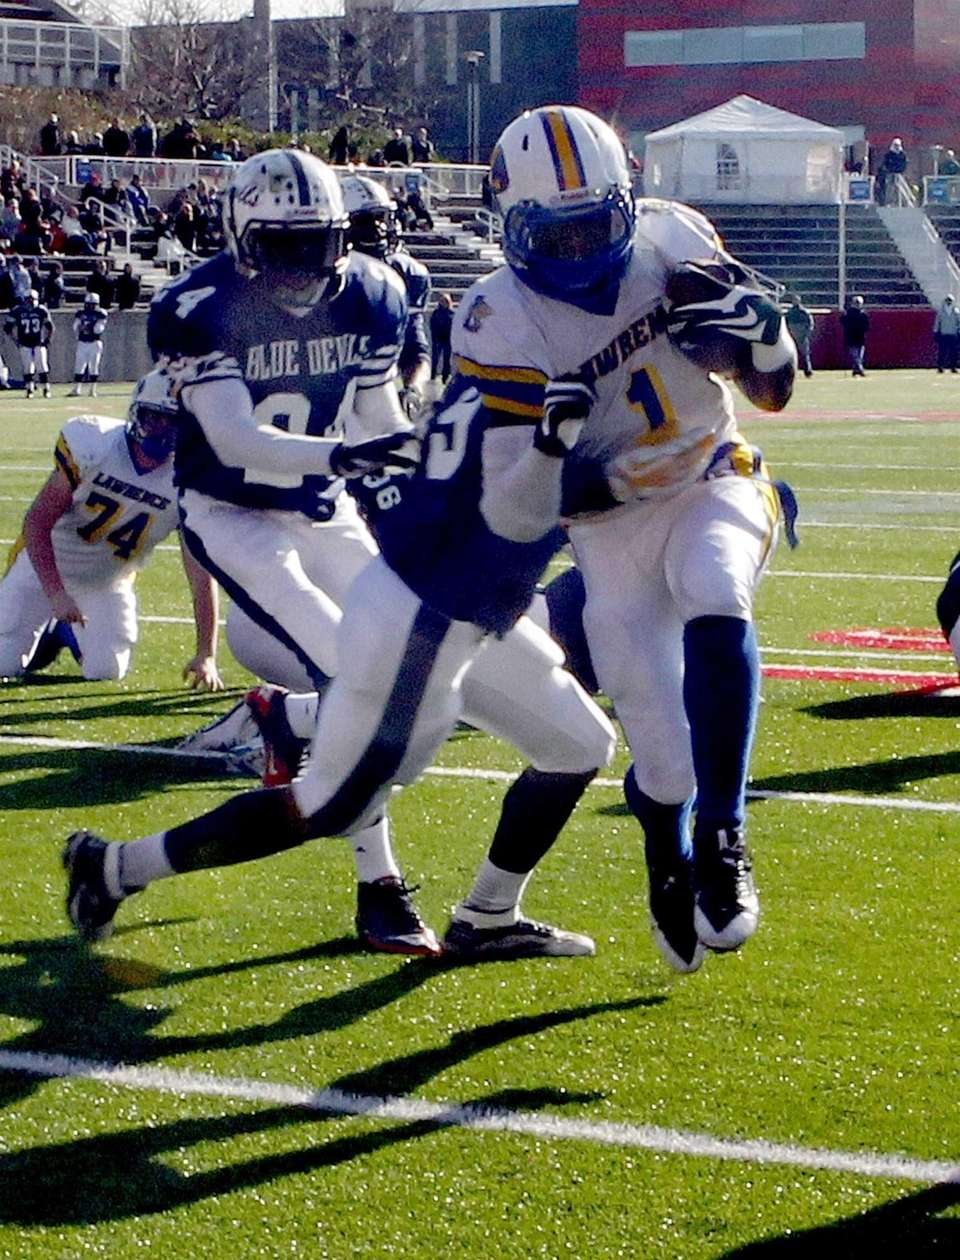 Lawrence's Jordan Fredericks runs in a touchdown during